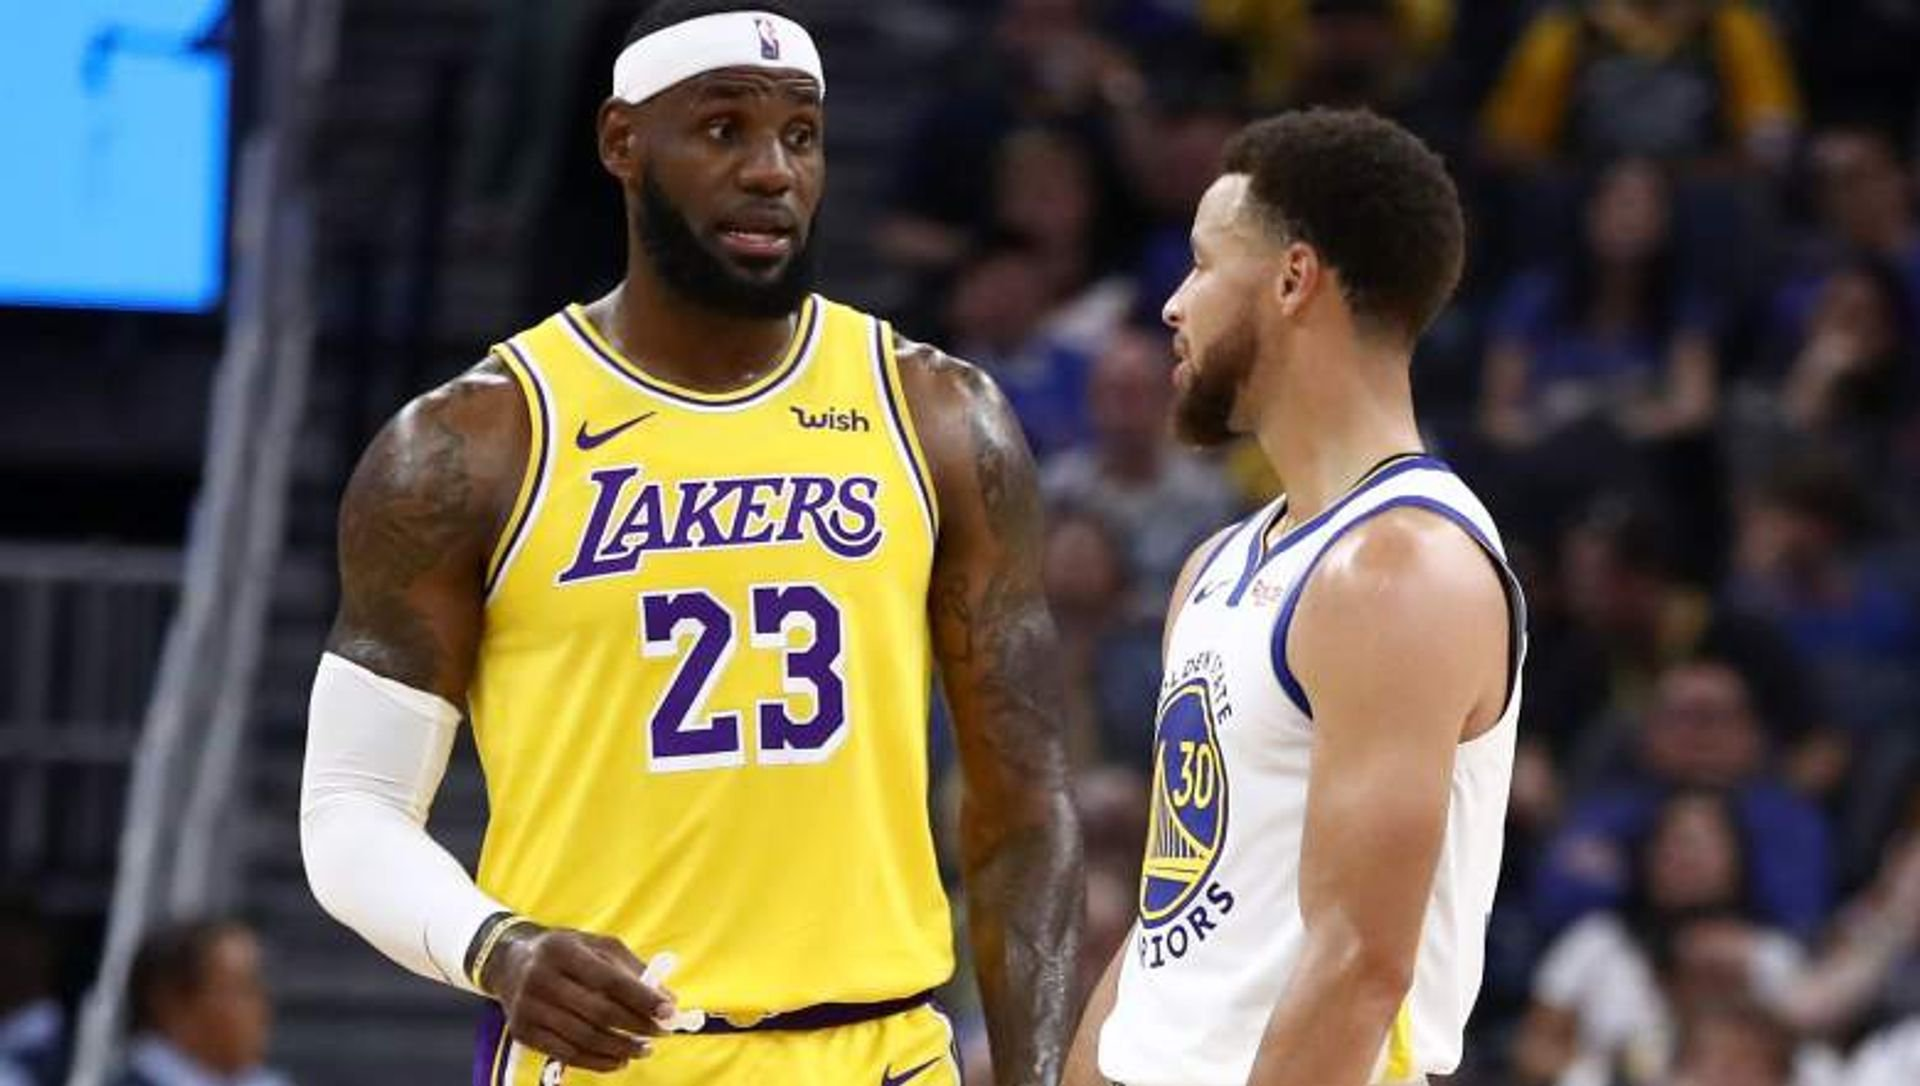 Shorthanded Lakers Visit Winded Warriors Looking To Extend Win Streak at Oracle